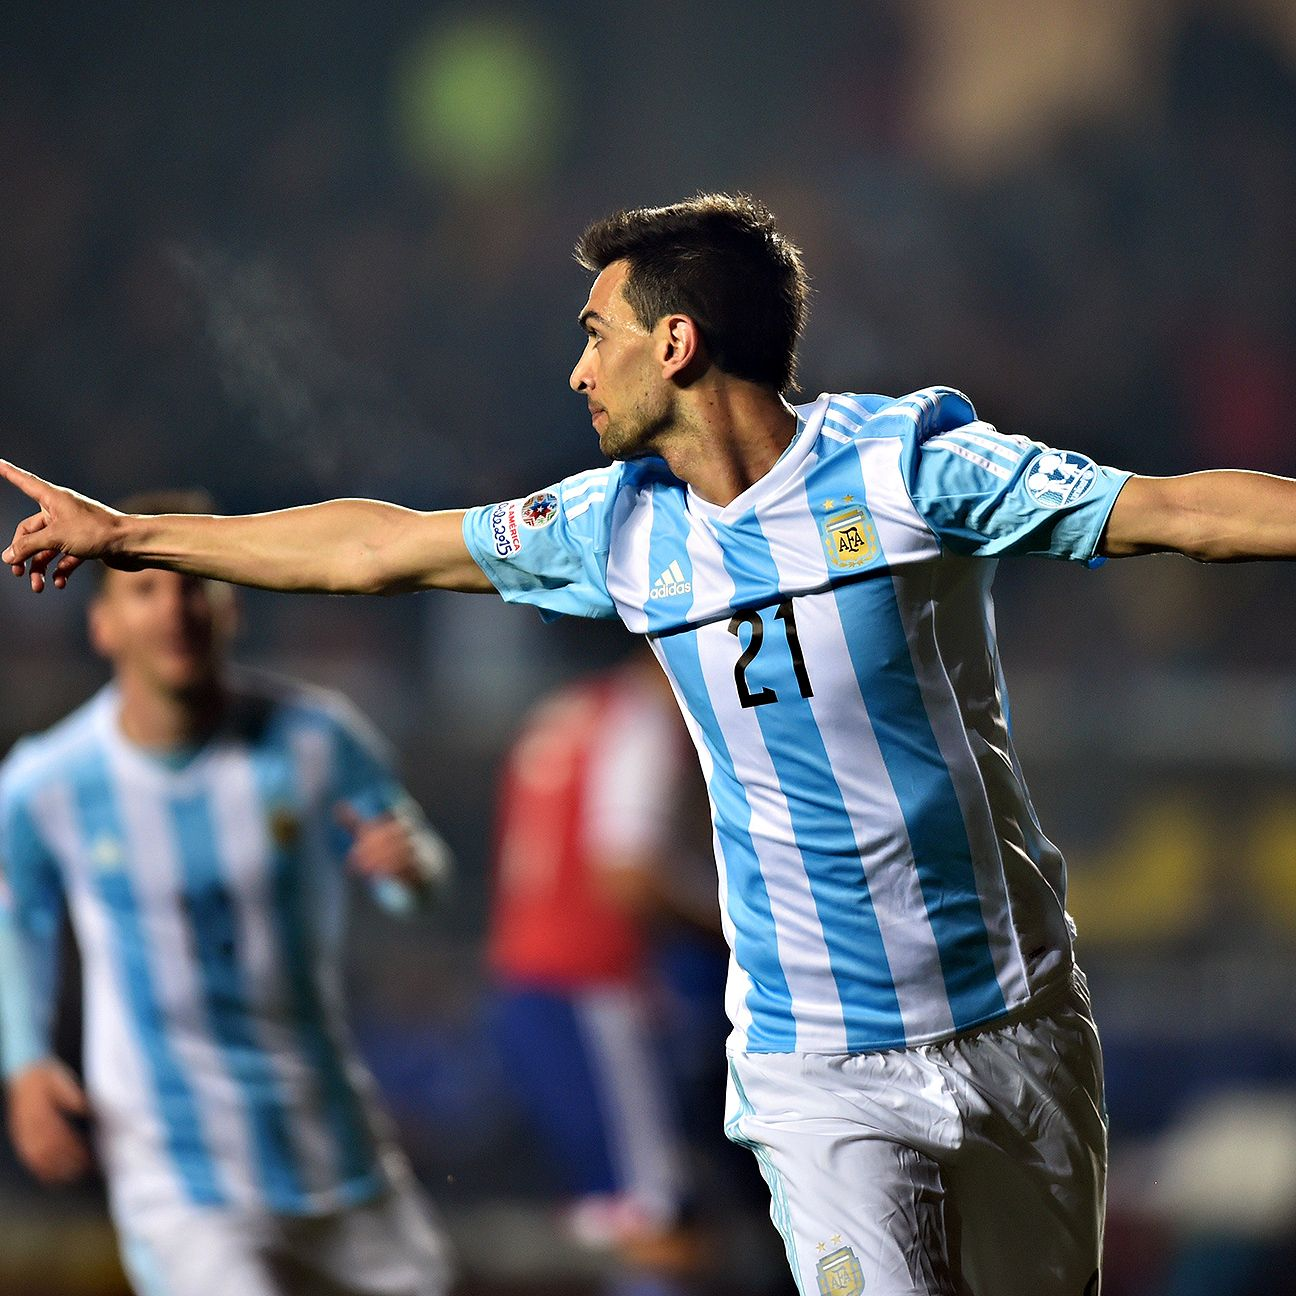 PSG midfielder Javier Pastore was an integral part of Argentina's run to the Copa America final.